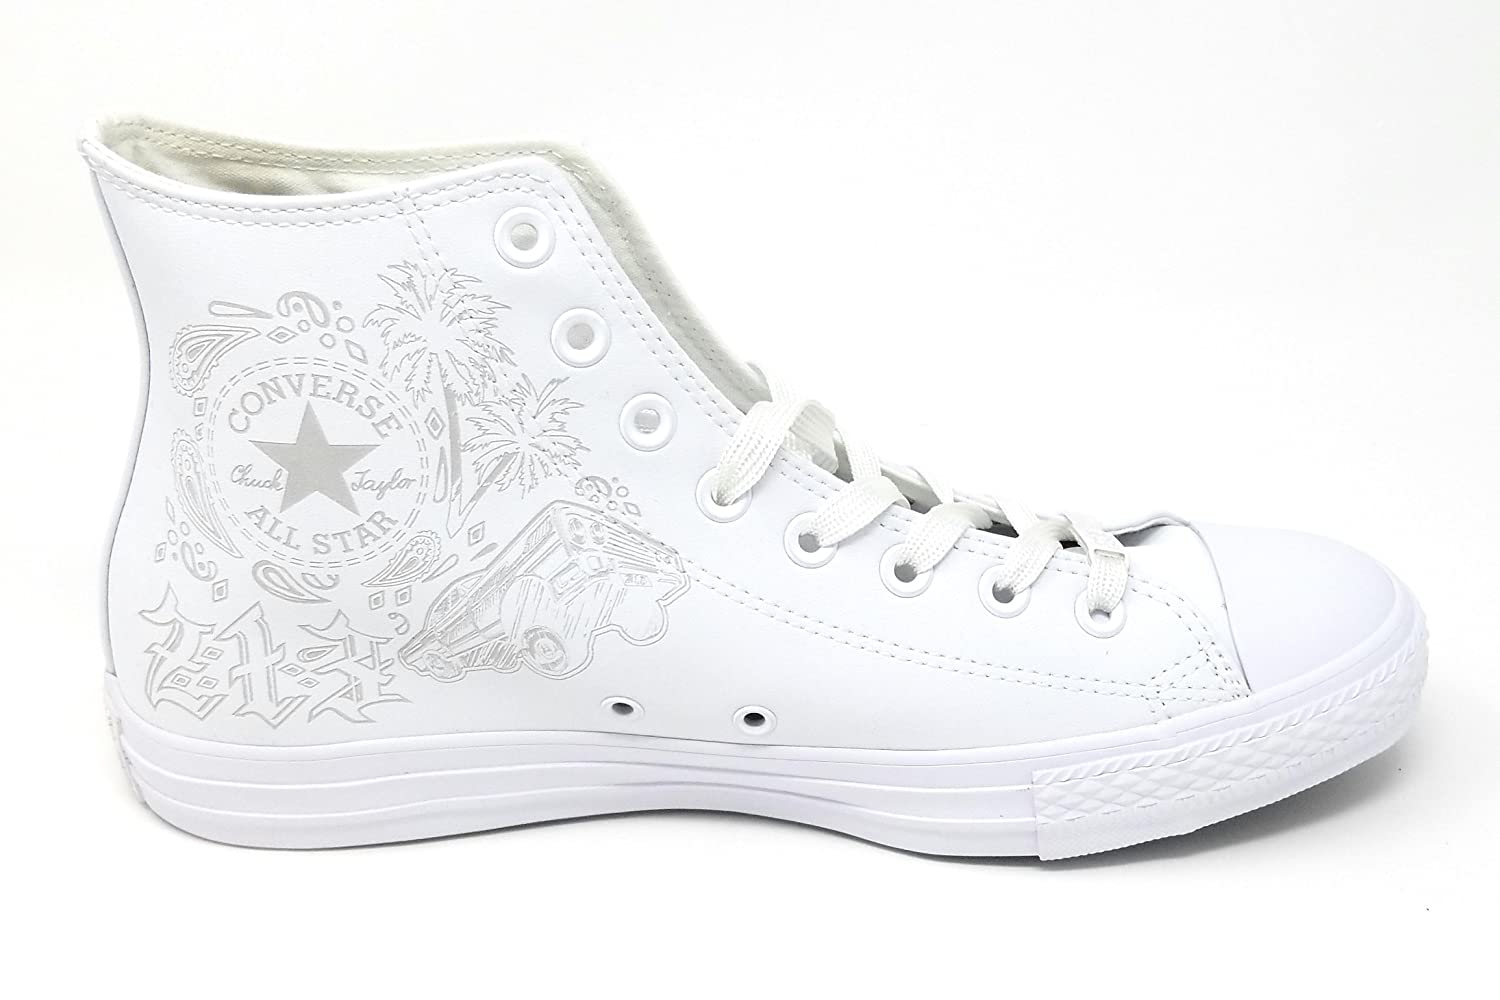 Converse Unisex Chuck Taylor All-Star High-Top Casual Sneakers in Classic Style and Color and Durable Canvas Uppers B07D5HXMYN 12 D(M) US|White/White/Mouse